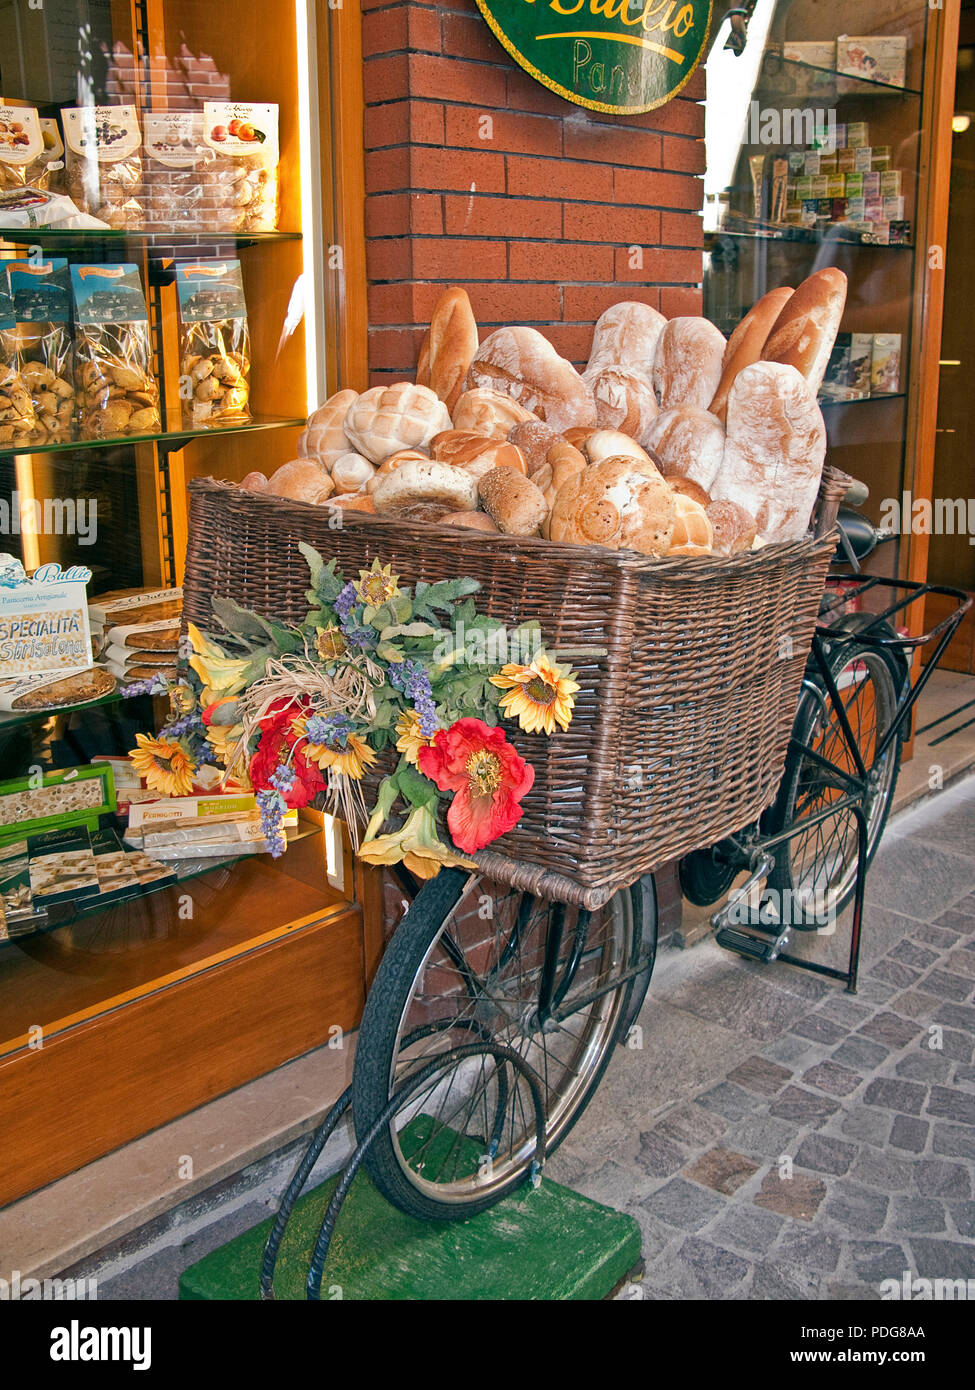 Bicycle with a basket full with bread, decoration in front of a bakery shop, alley at old town of Garda, province Verona, Lake Garda, Lombardy, Italy Stock Photo